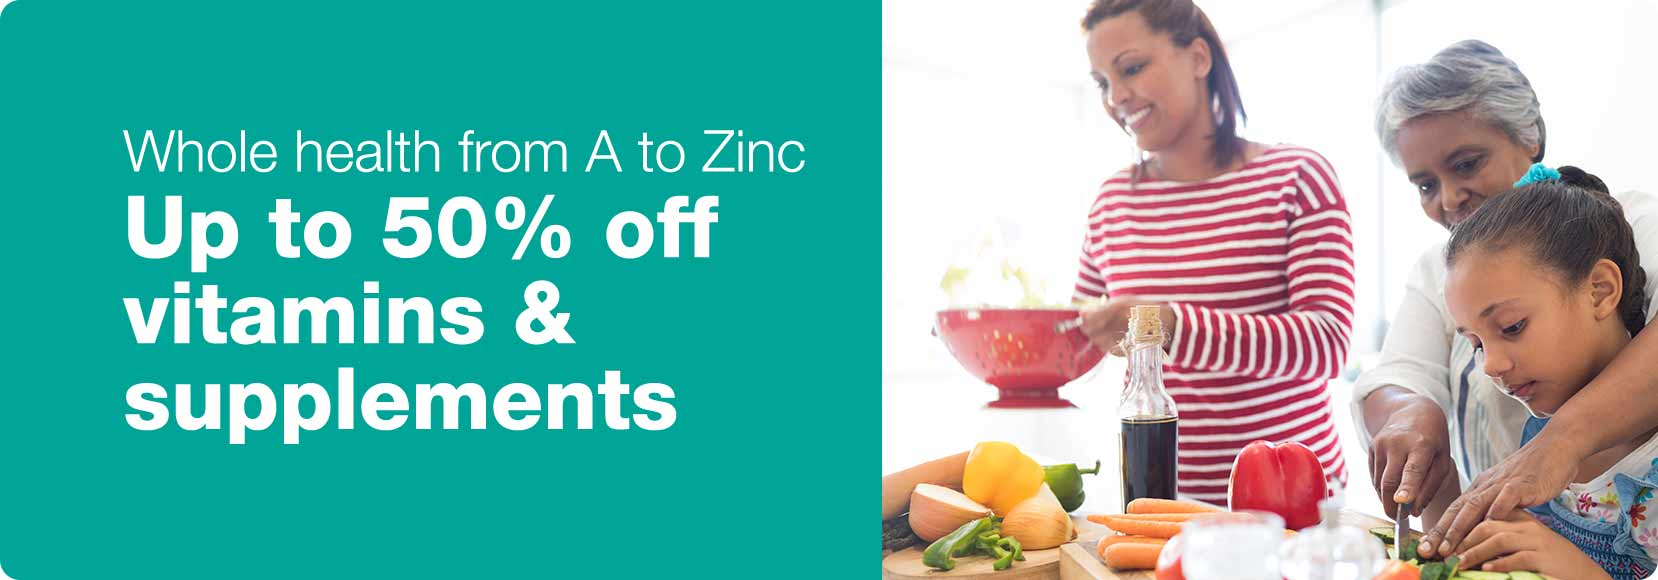 Whole health from A to Zinc. Up to 50% off vitamins & supplements.